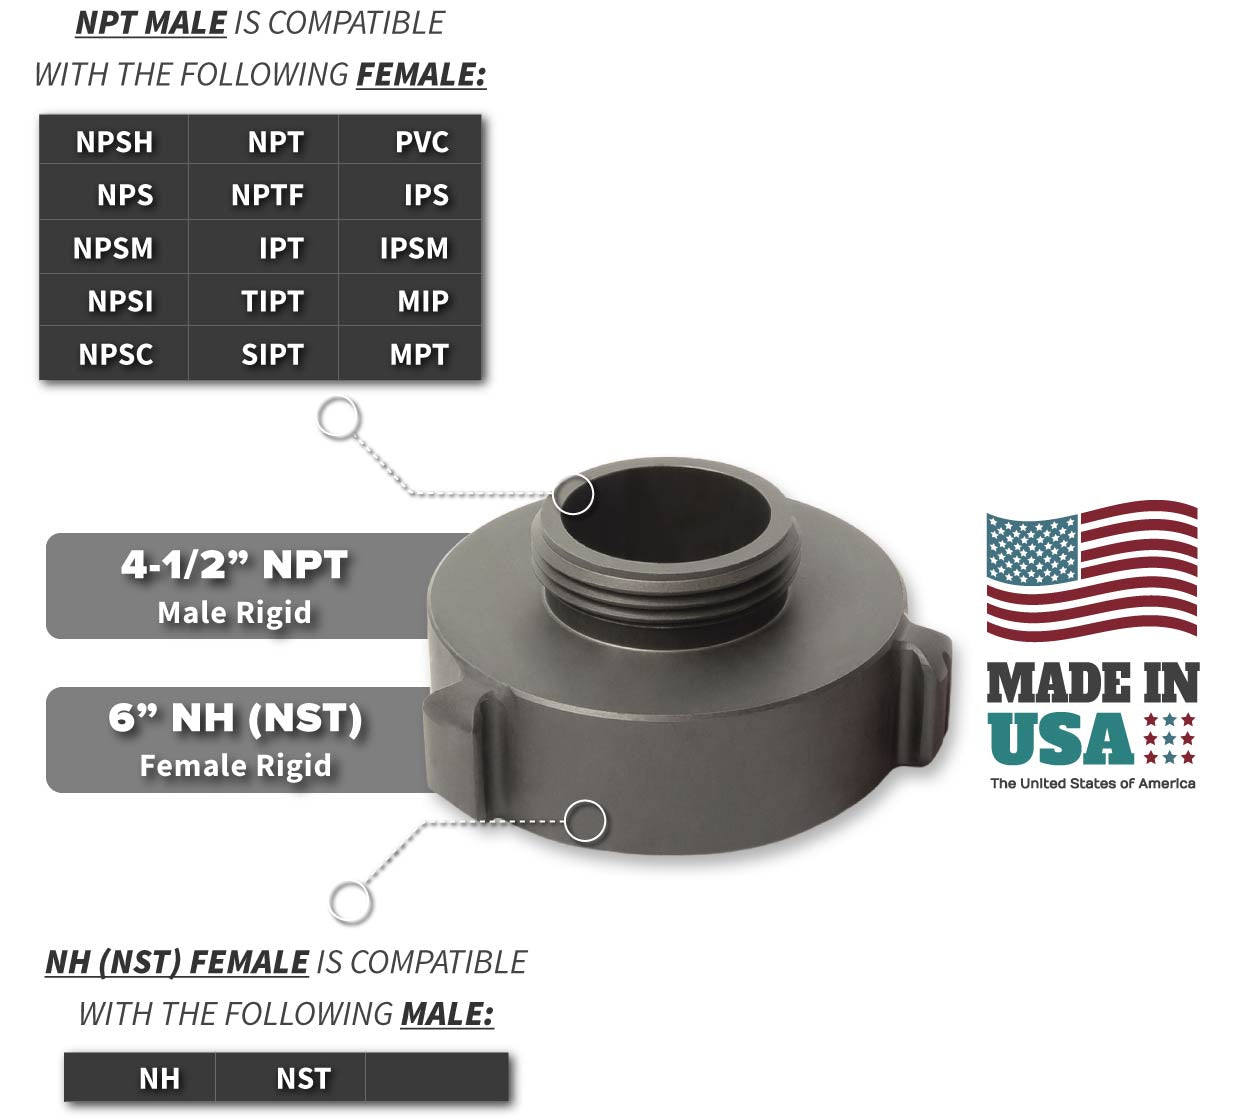 6 Inch NH-NST Female x 4.5 Inch NPT Male Compatibility Thread Chart